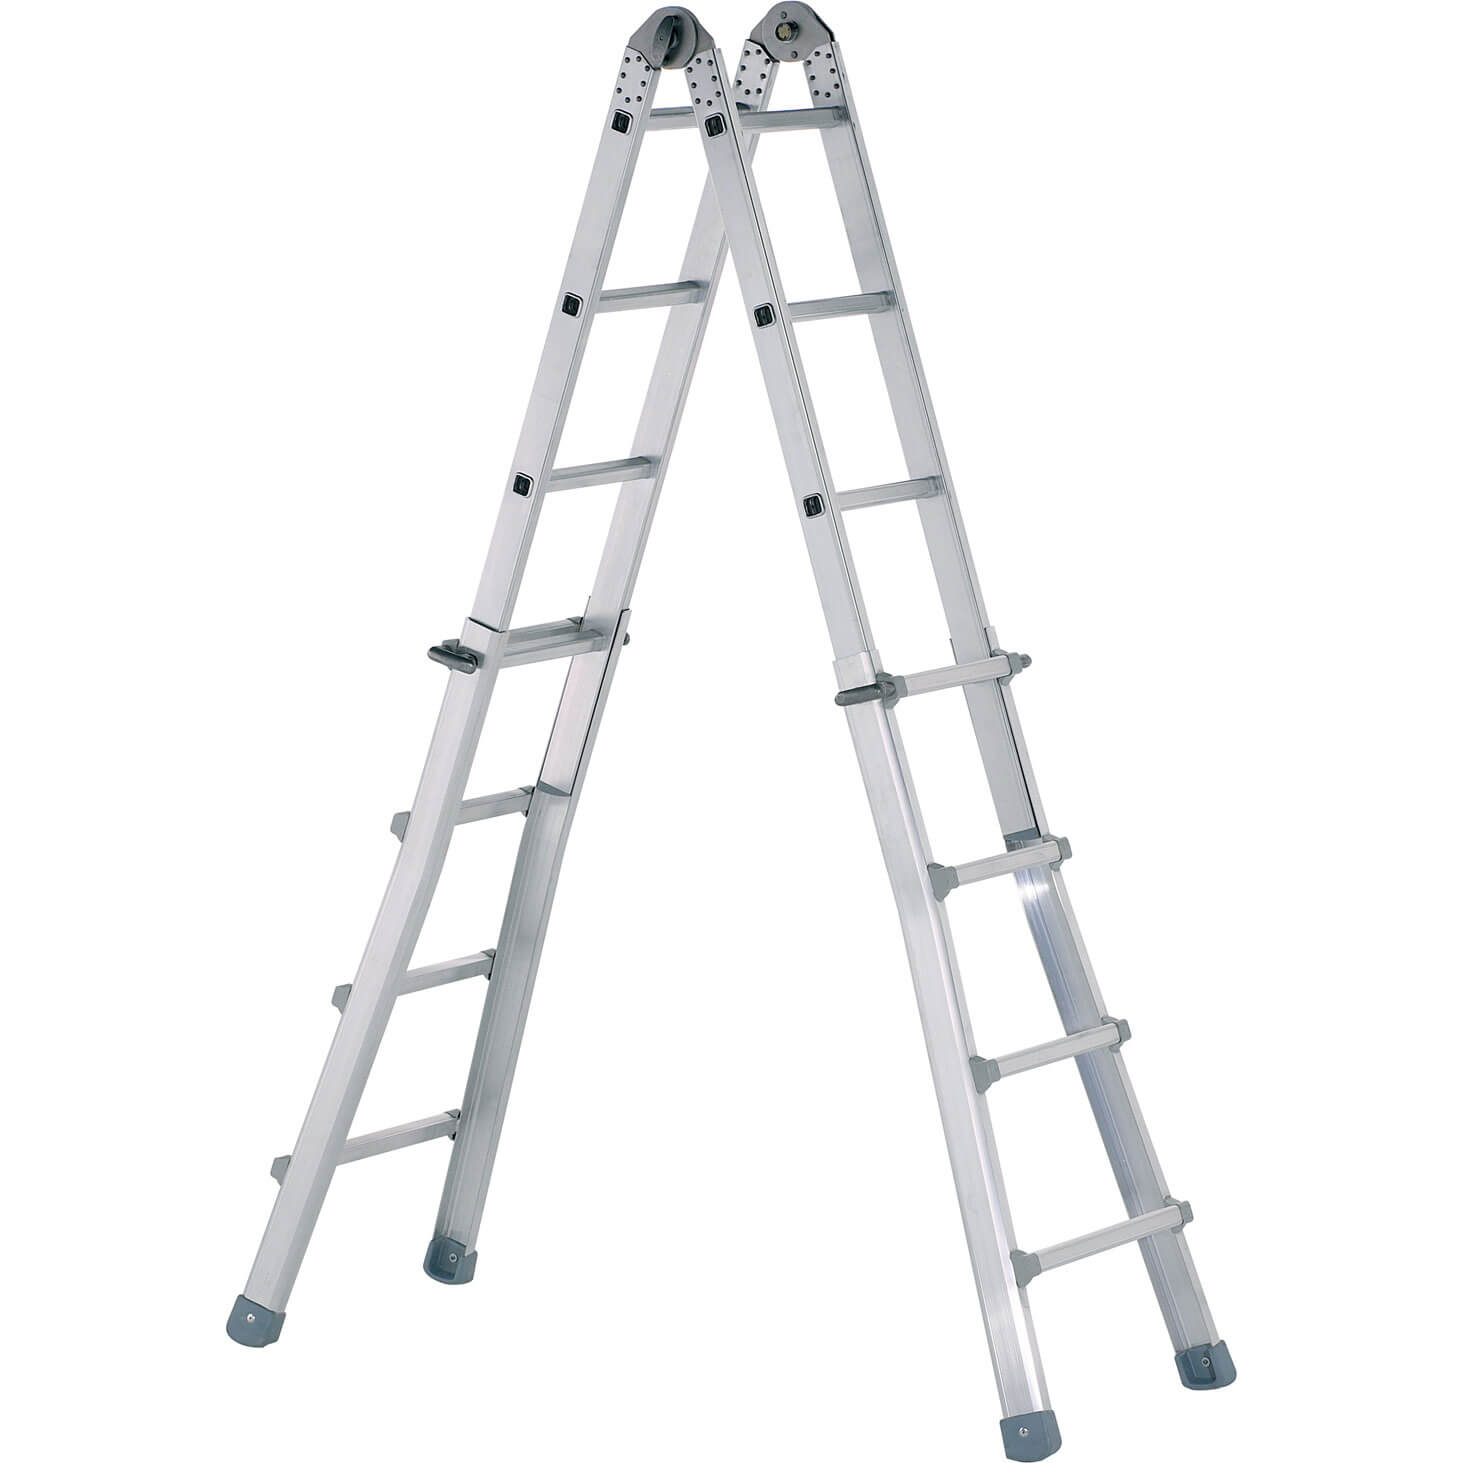 Zarges Z600 Industrial Telescopic Combination Ladder 6.4m